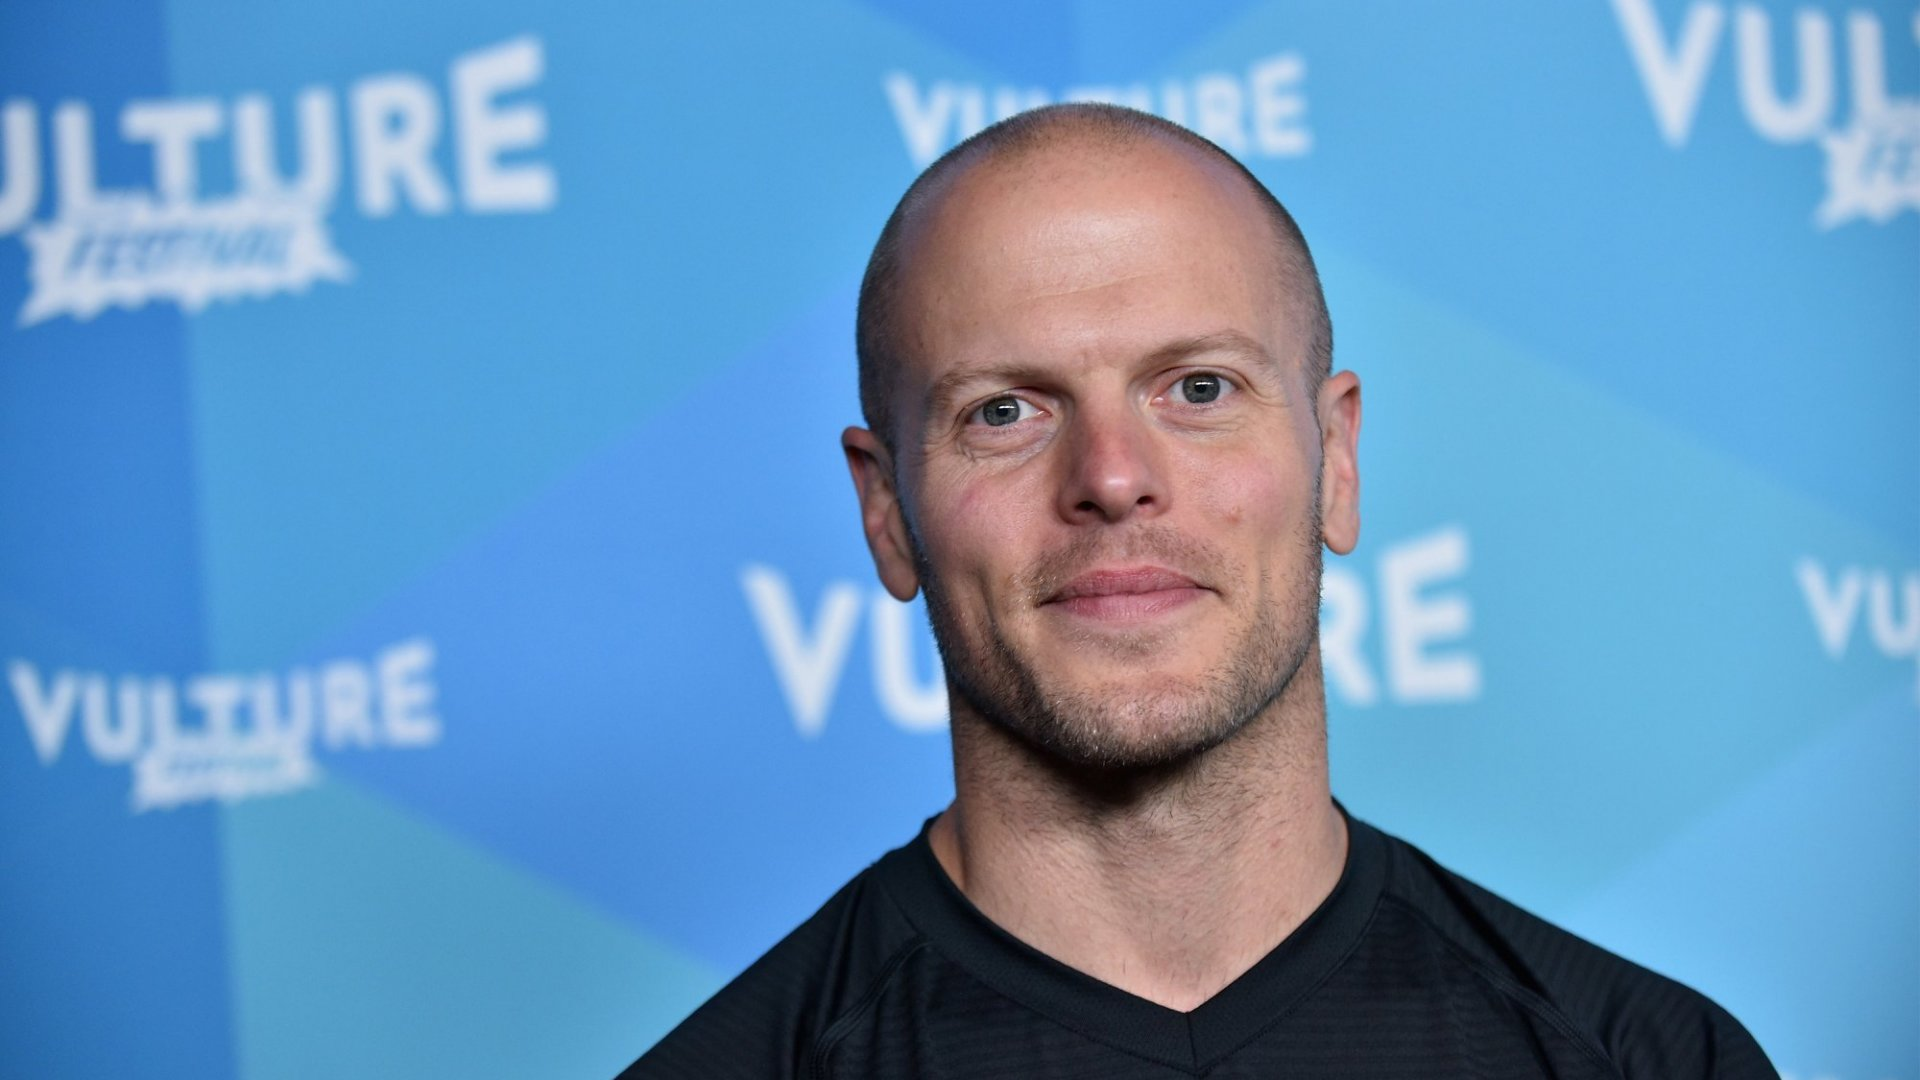 Deciding Whether to Write a Book? Tim Ferriss Says You Should Ask Yourself This Simple Question